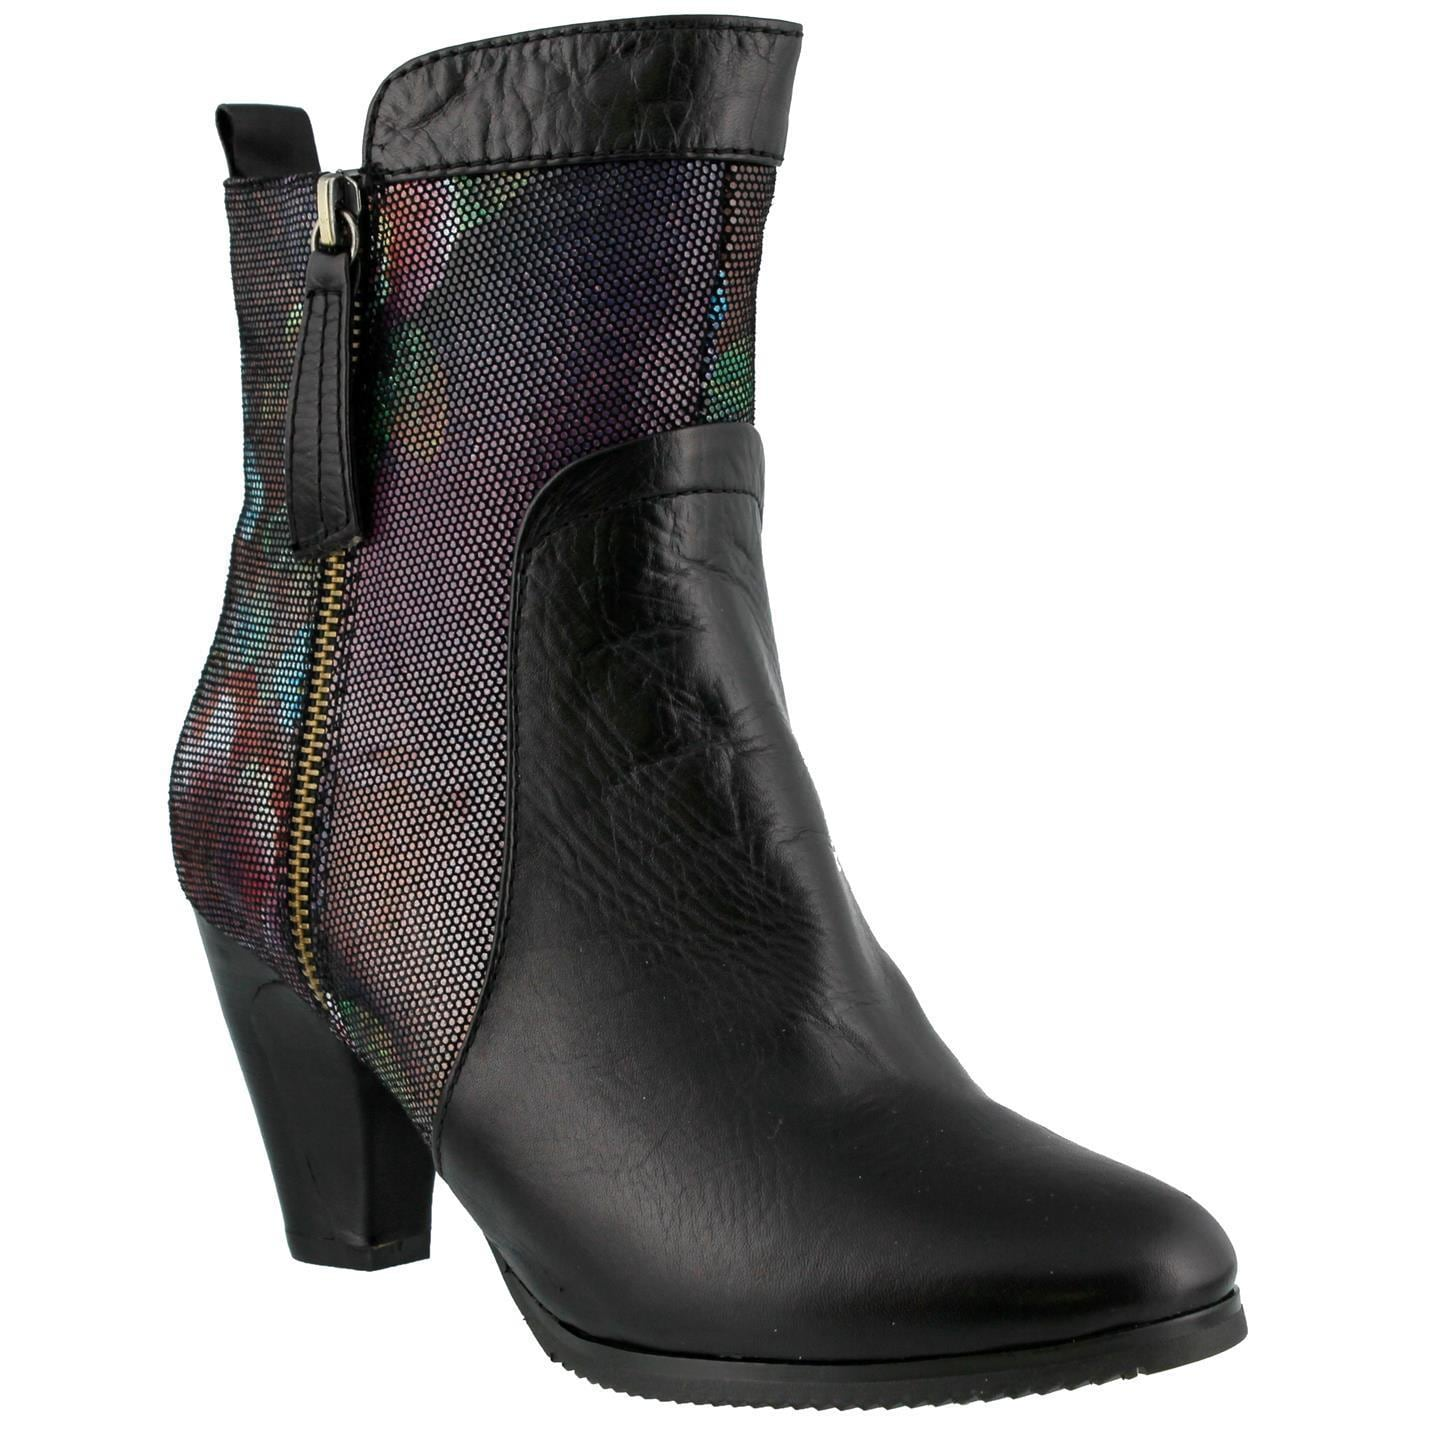 Women's L'Artiste by Spring Step Moonlight Ankle Boot Black Multi Leather -  Free Shipping Today - Overstock.com - 17532749